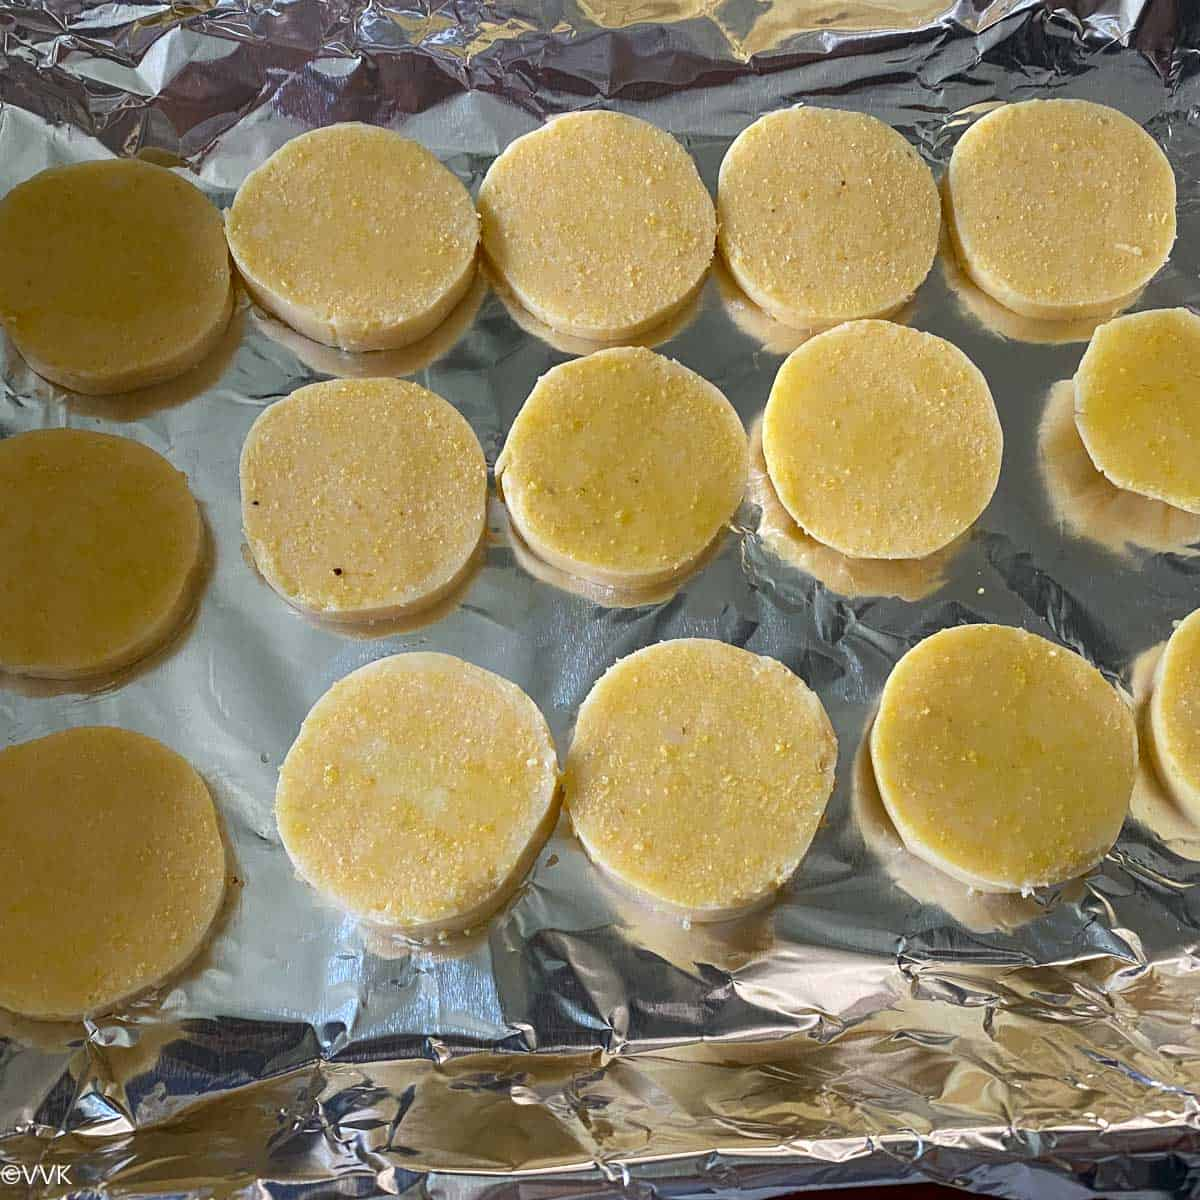 brushing the polenta with oil and baking